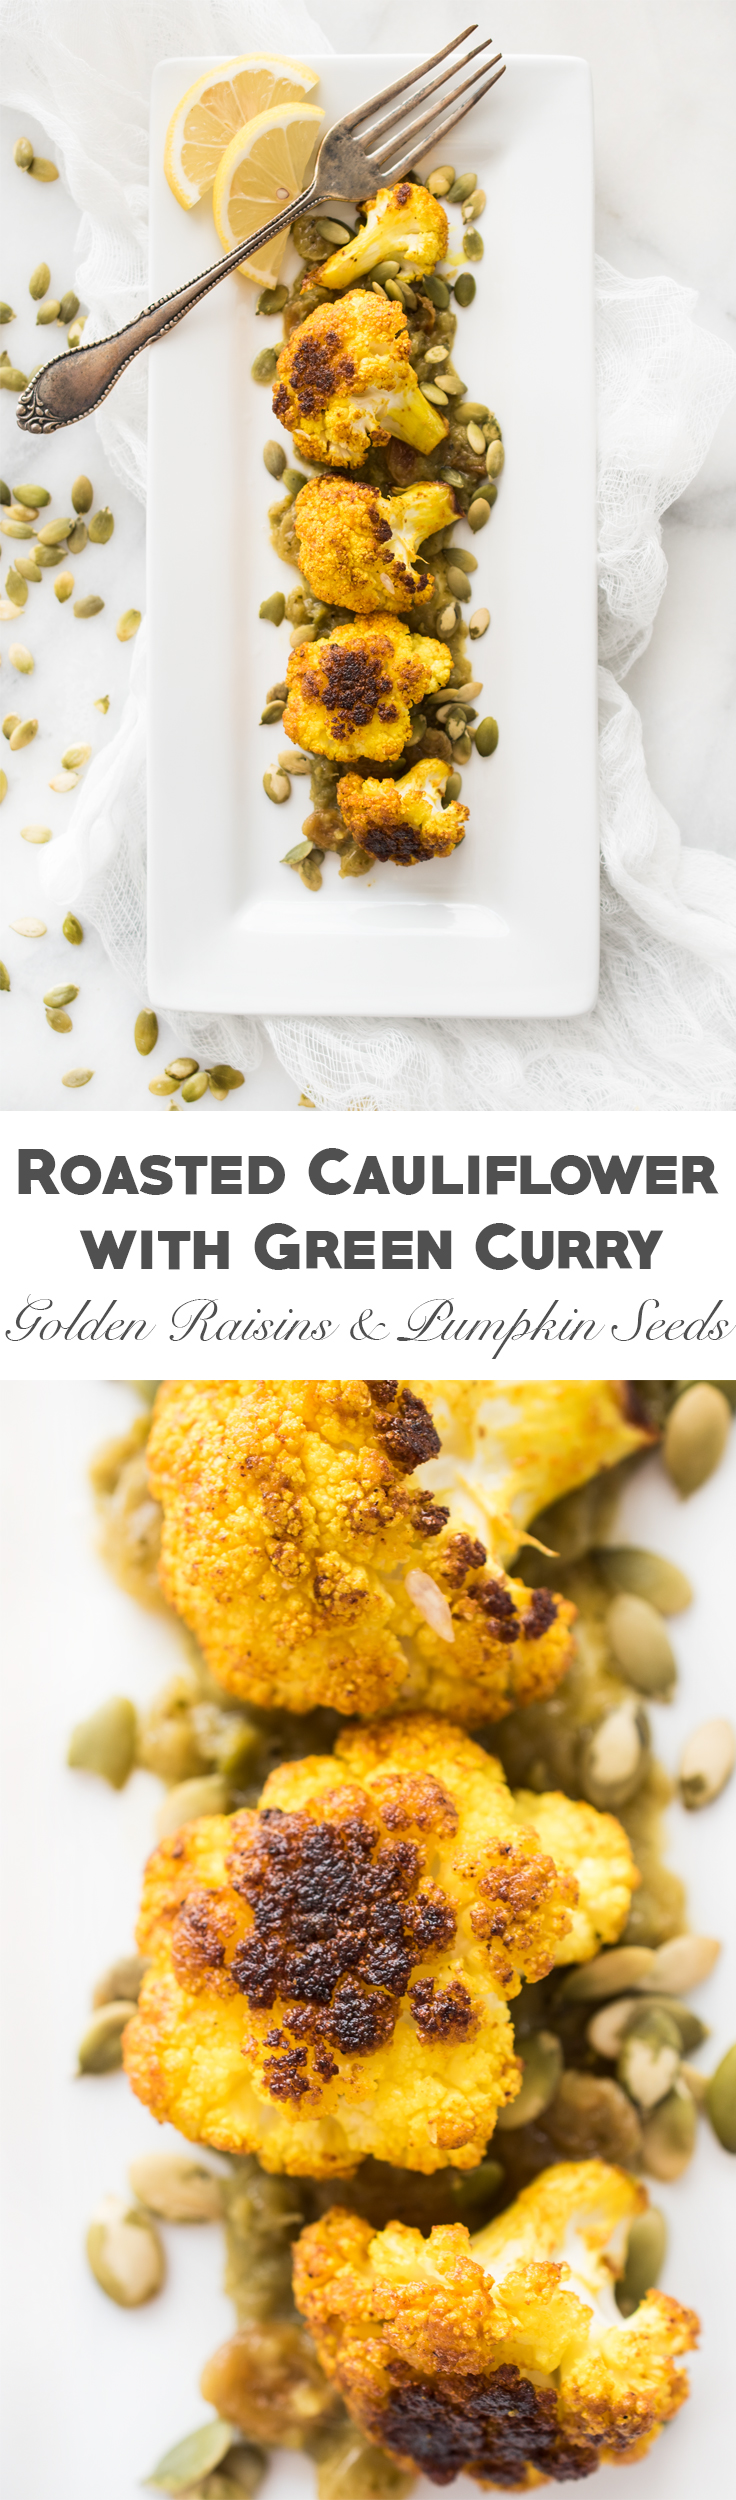 Roasted Cauliflower with Green Curry, Golden Raisins, and Pumpkin Seeds. This side dish has got some serious flavor!